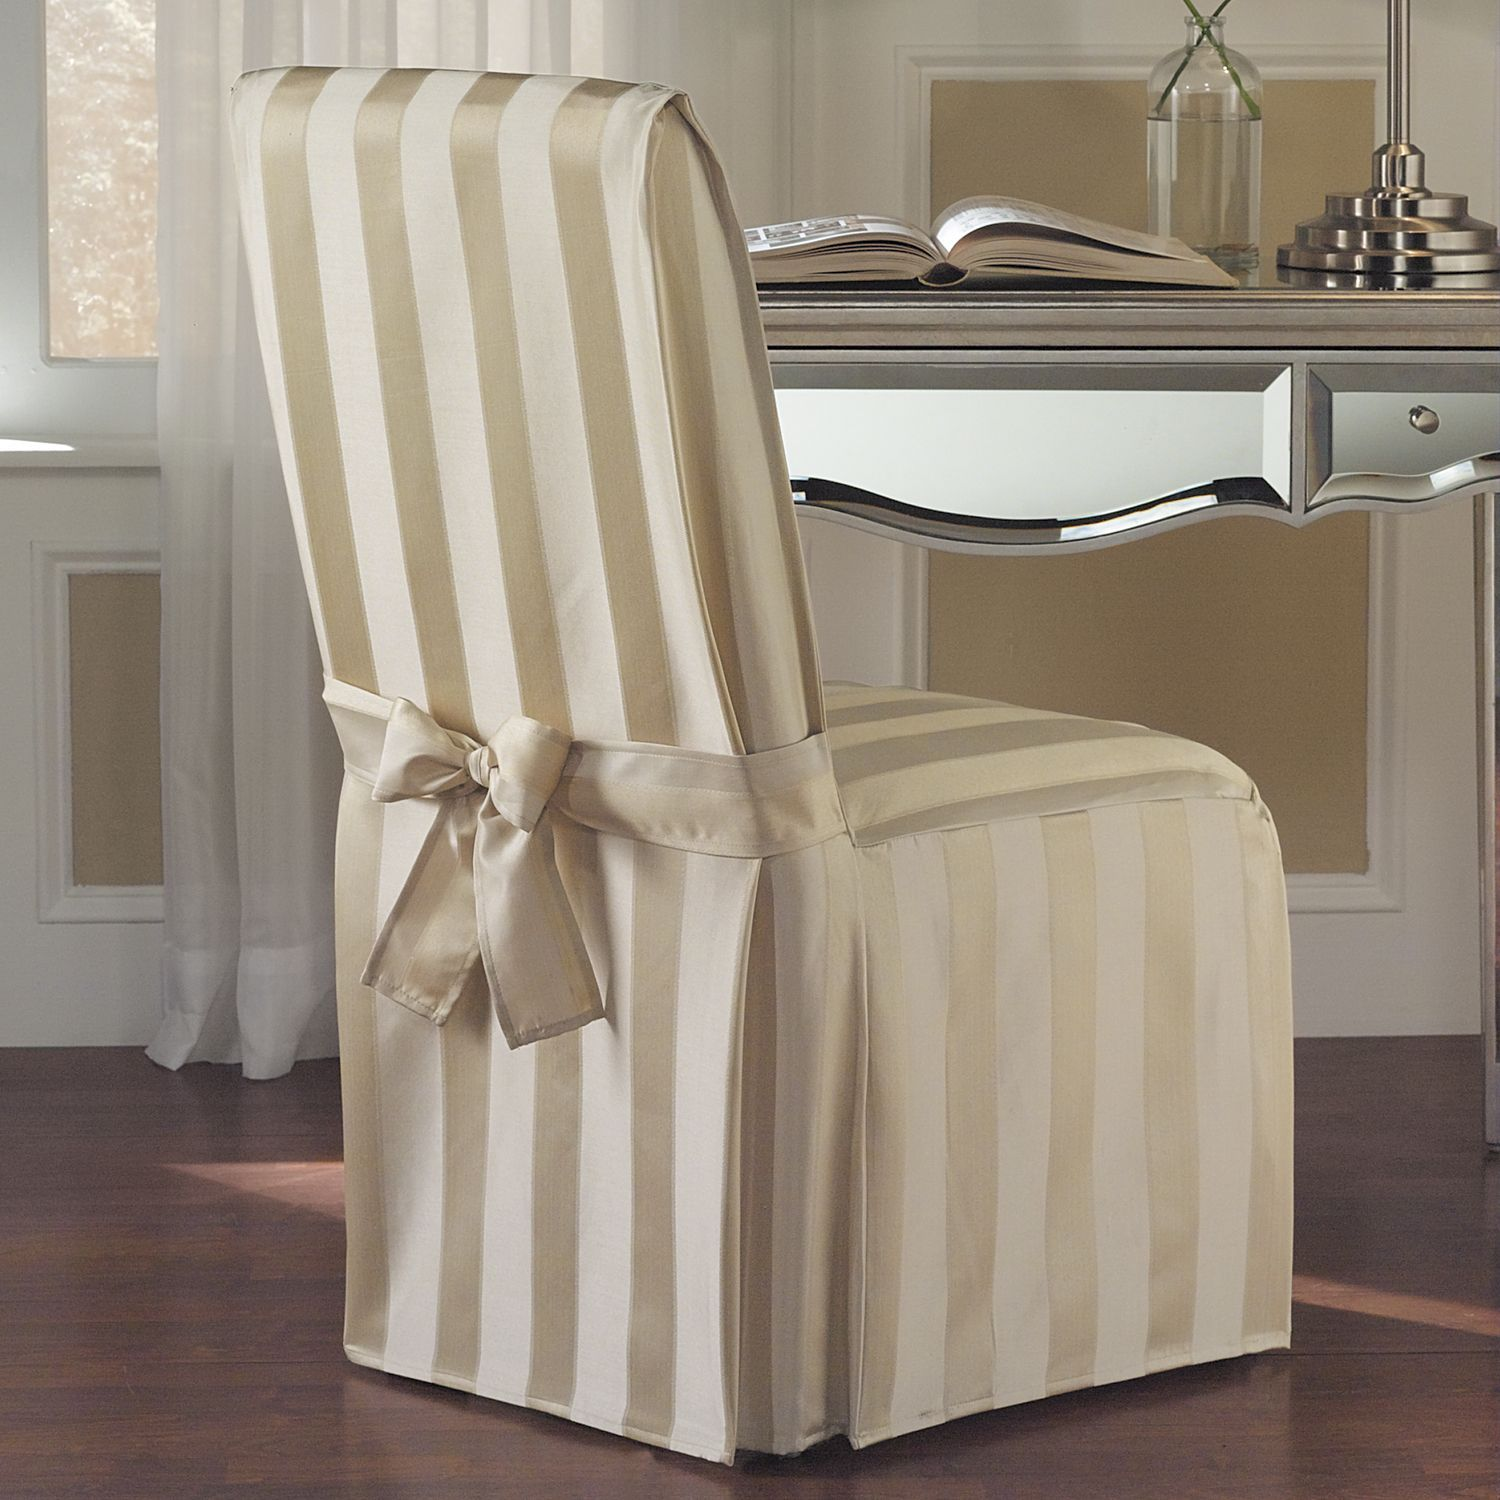 Provide Protection And Beauty For Your Dining Furniture With The Madison Dining  Chair Cover. This